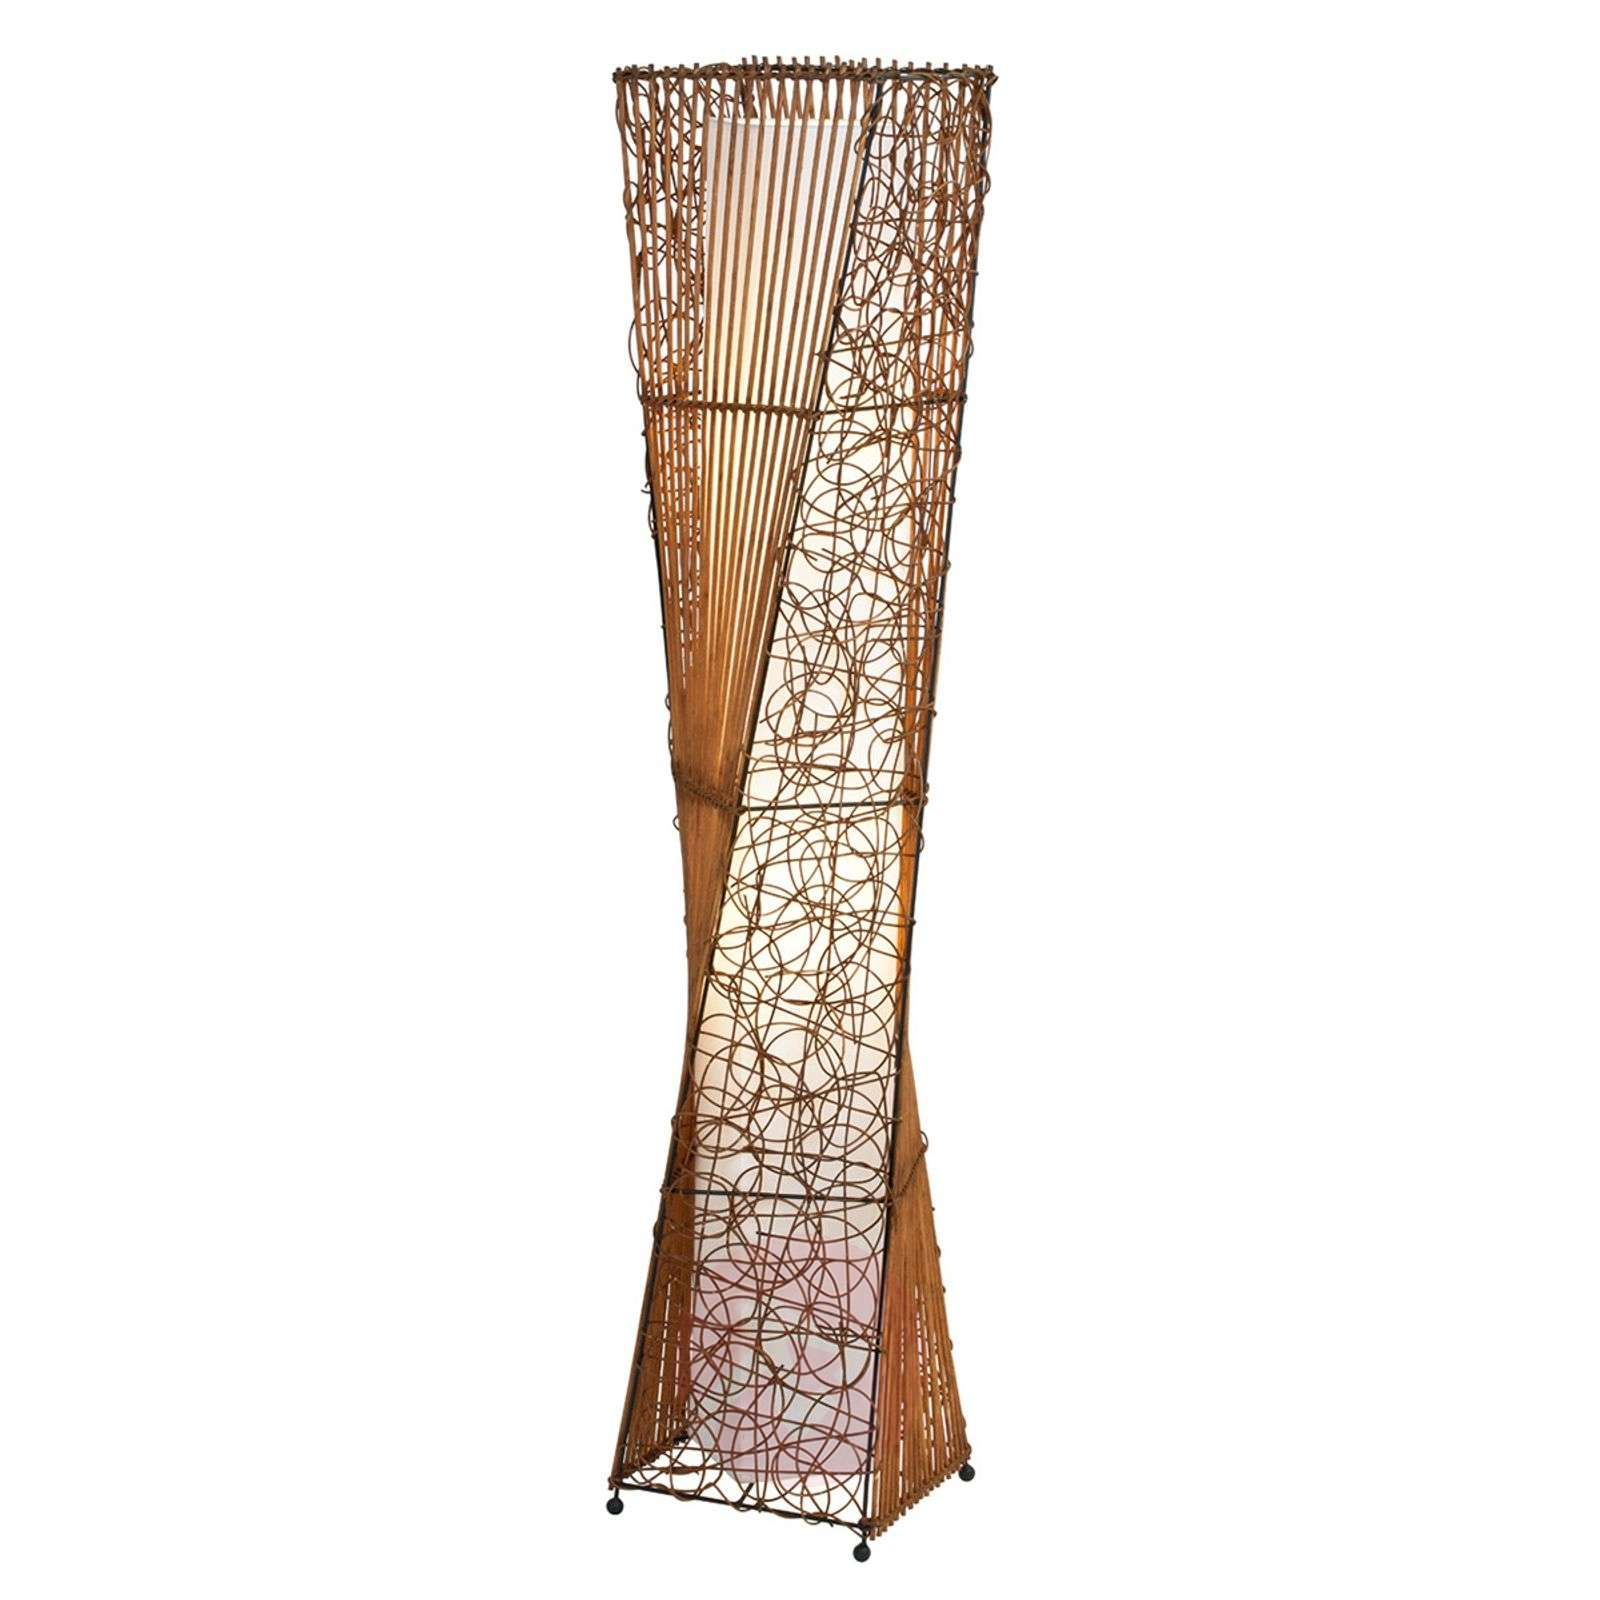 ZIMBO floor lamp made of rattan-7007399-01